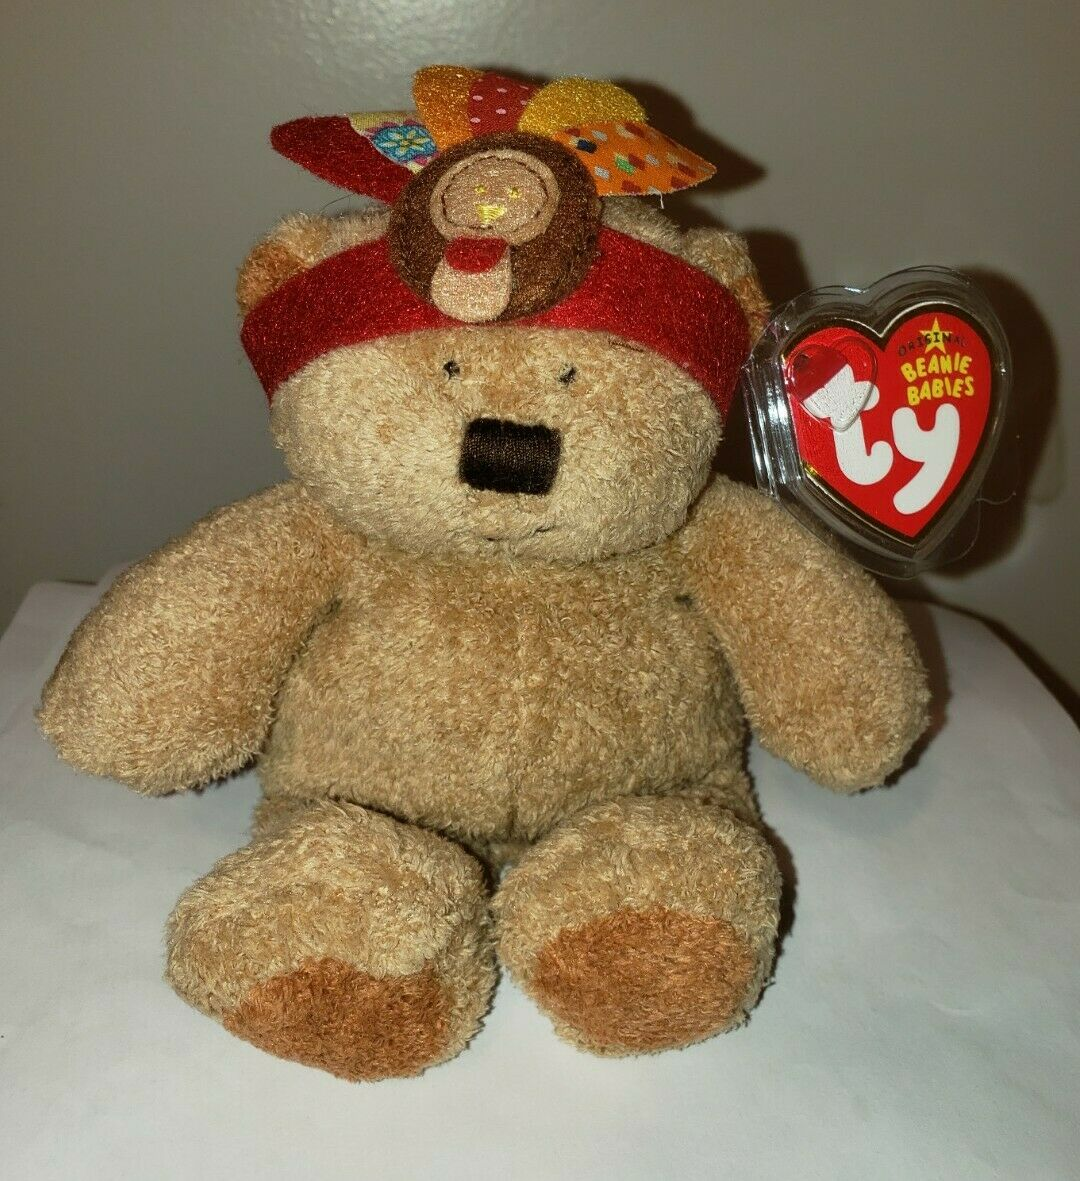 78e9d4a2365 Ty Beanie Baby ~ LITTLE BEAR the Indian Thanksgiving Bear (6.5 Inch) MWMT 1  of 3Only 4 available See More